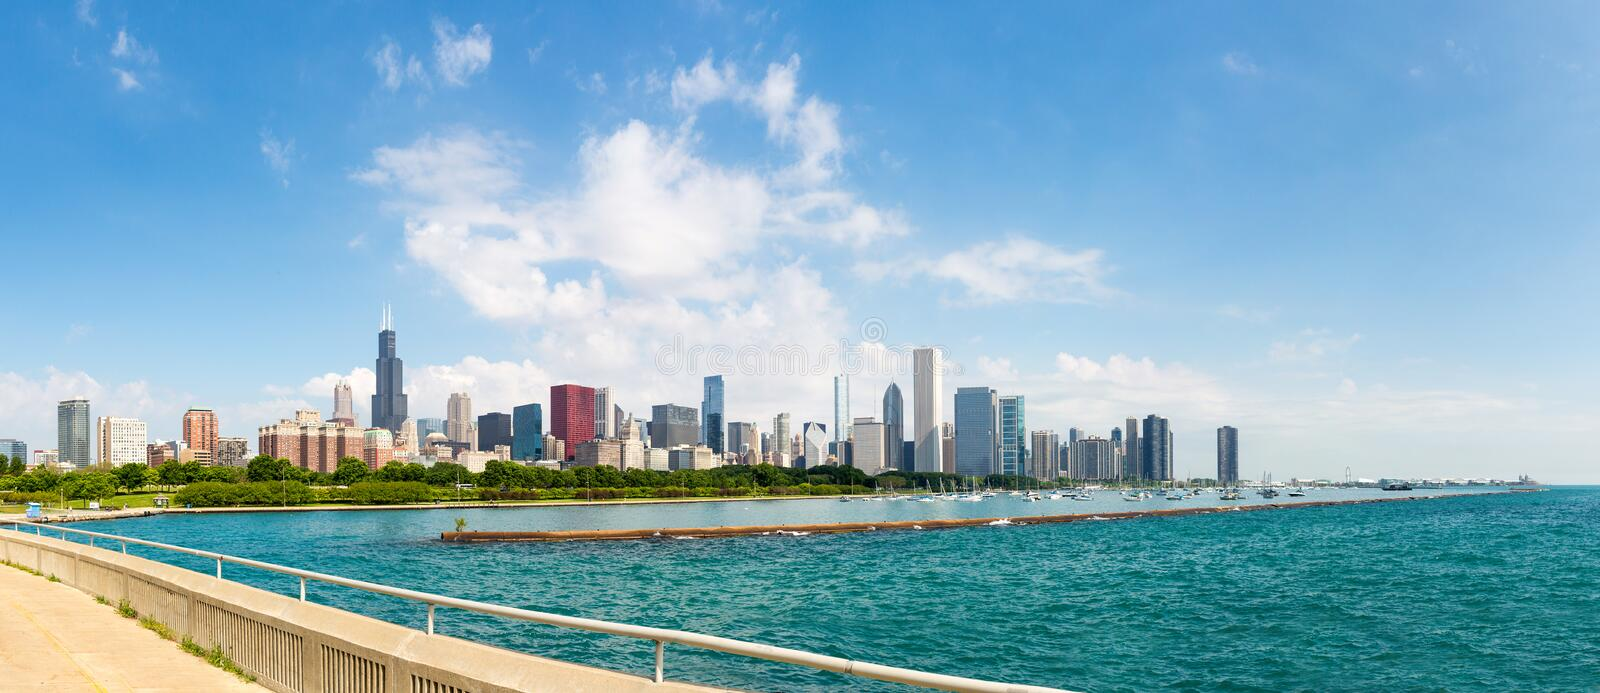 Cityscape of Chicago in a summer day. Illinois USA royalty free stock photos